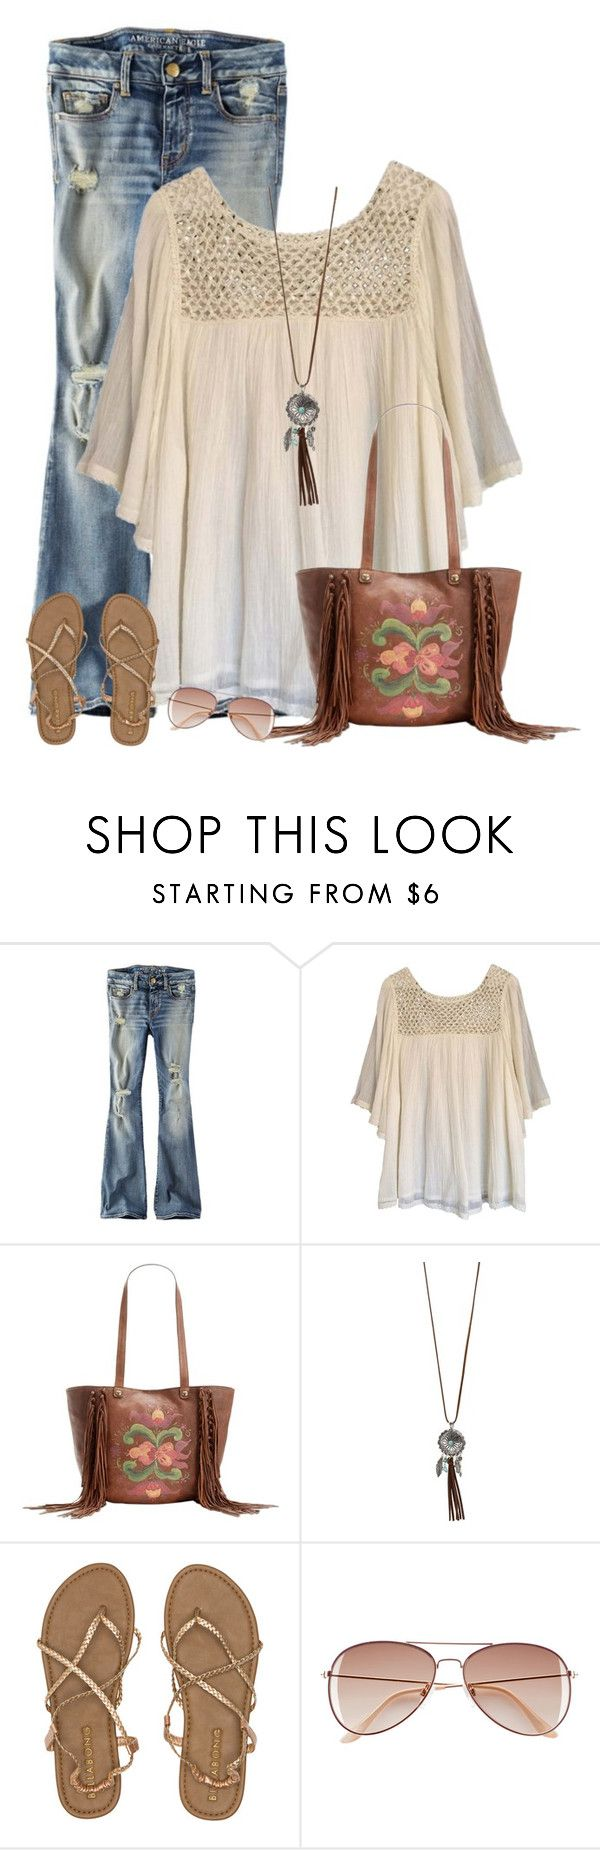 """Farmers Market Outfit"" by cindycook10 ❤ liked on Polyvore featuring American Eagle Outfitters, Haute Hippie, Patricia Nash, Charlotte Russe, Billabong and H&M"